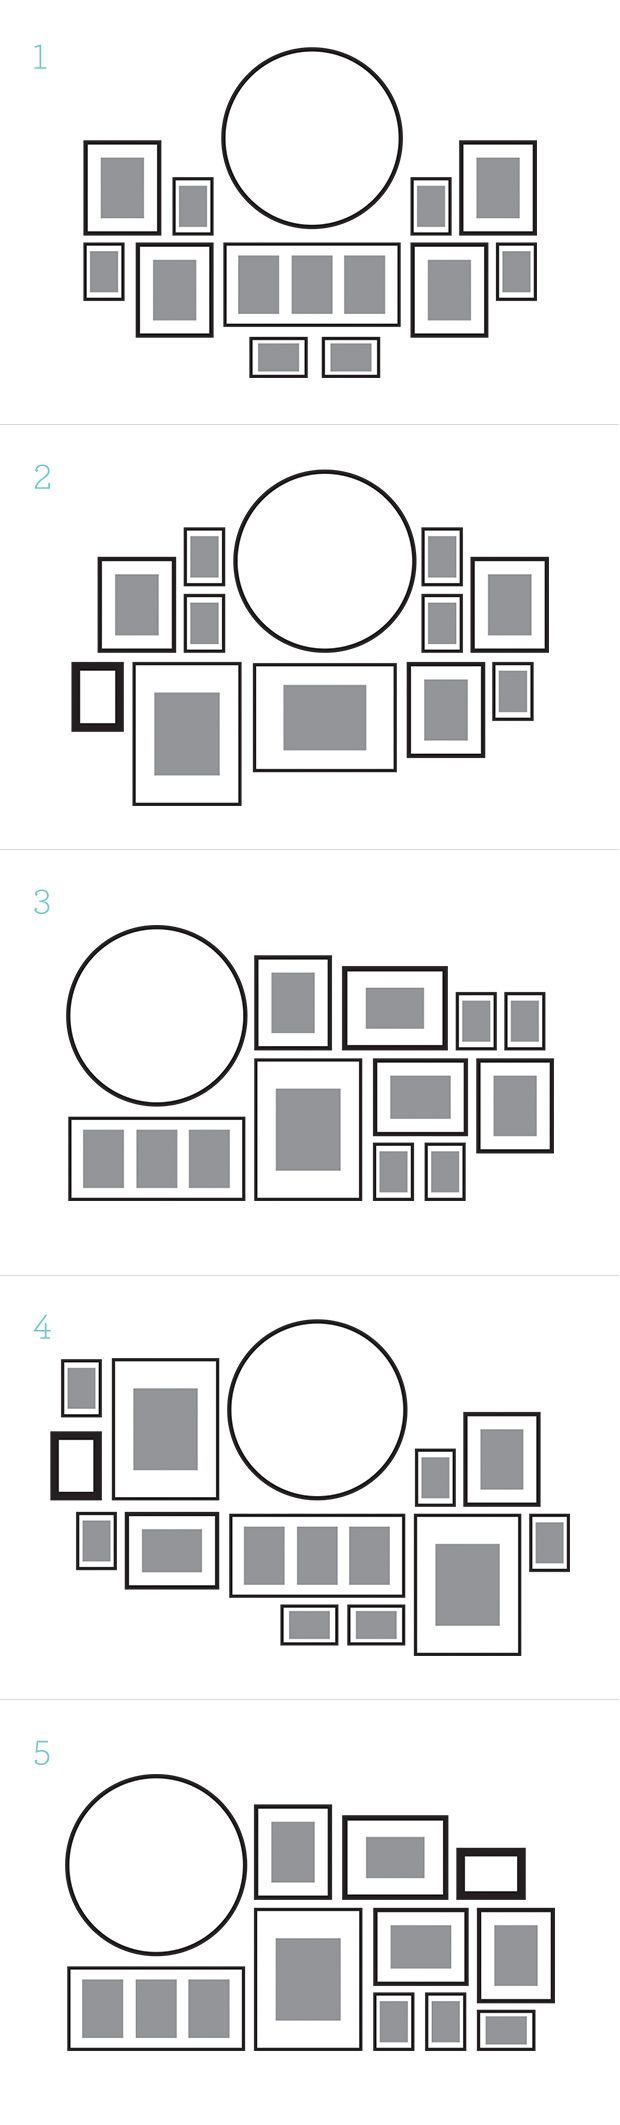 Check out this variety of gallery wall designs that help you organize your photos